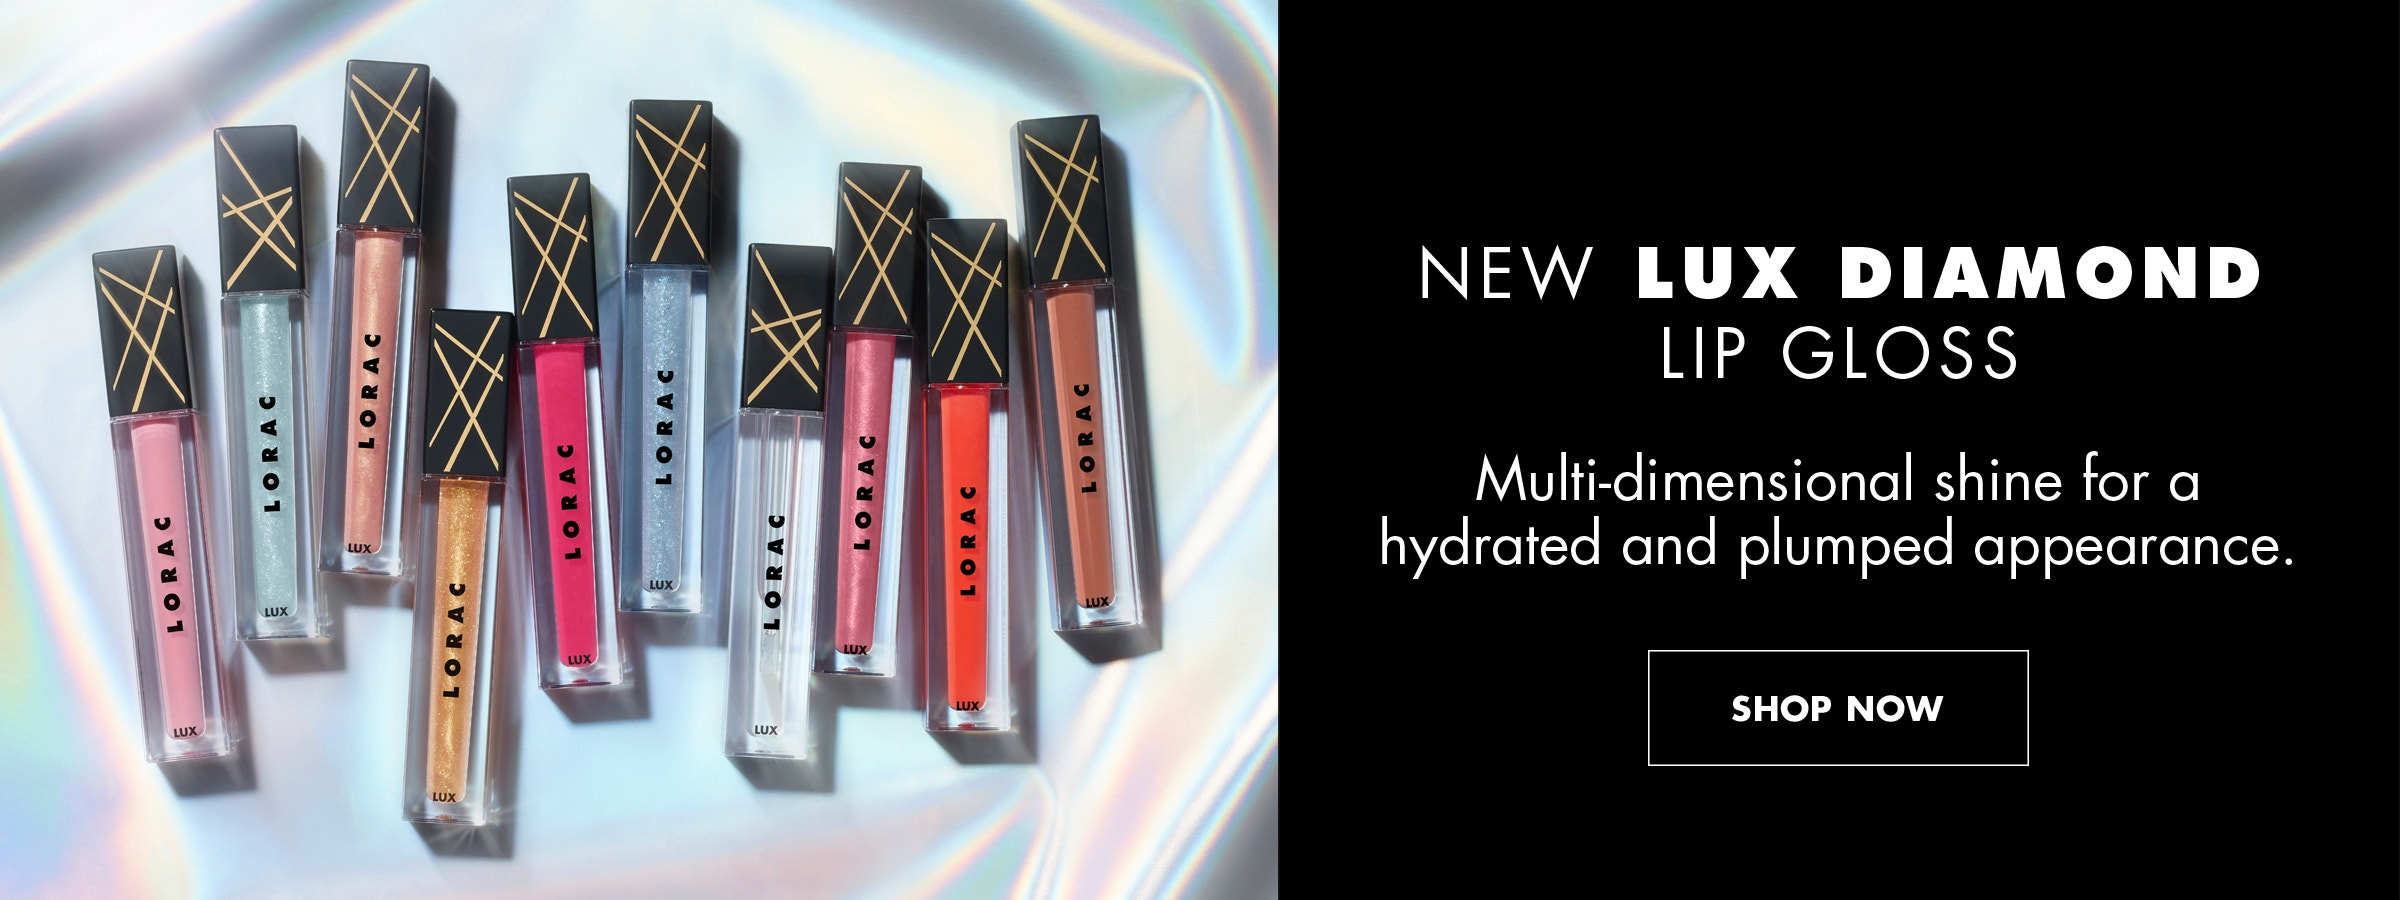 NEW LUX DIAMOND LIP GLOSS |Multi-Dimensional shine for a hydrated and plumped appearance. | SHOP NOW